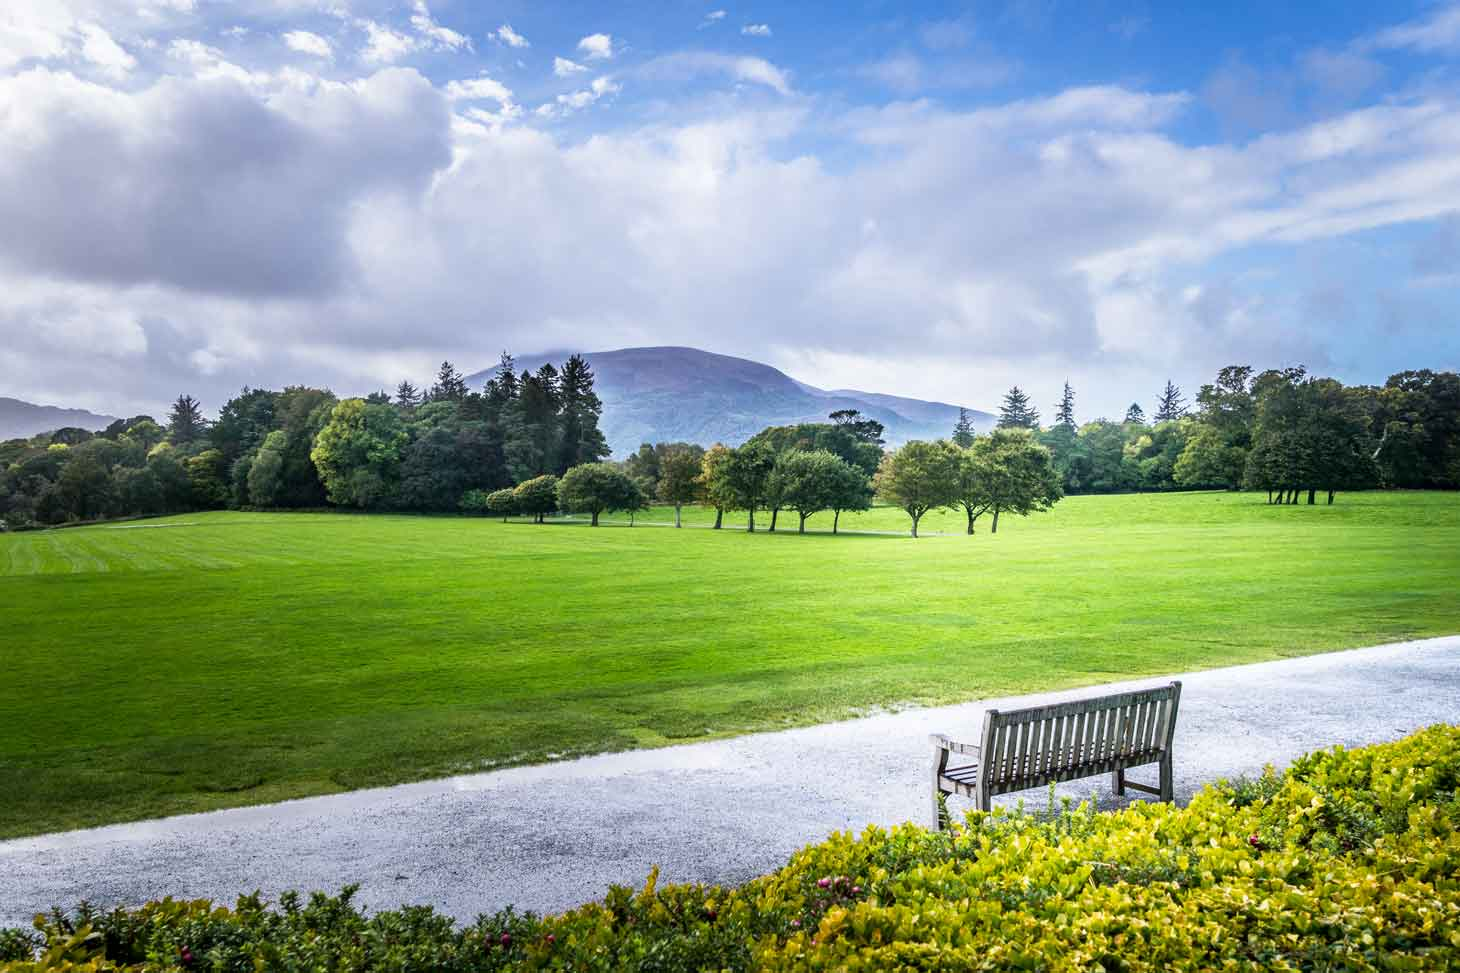 Bench with a view of Muckross Lake to the side of Muckross House